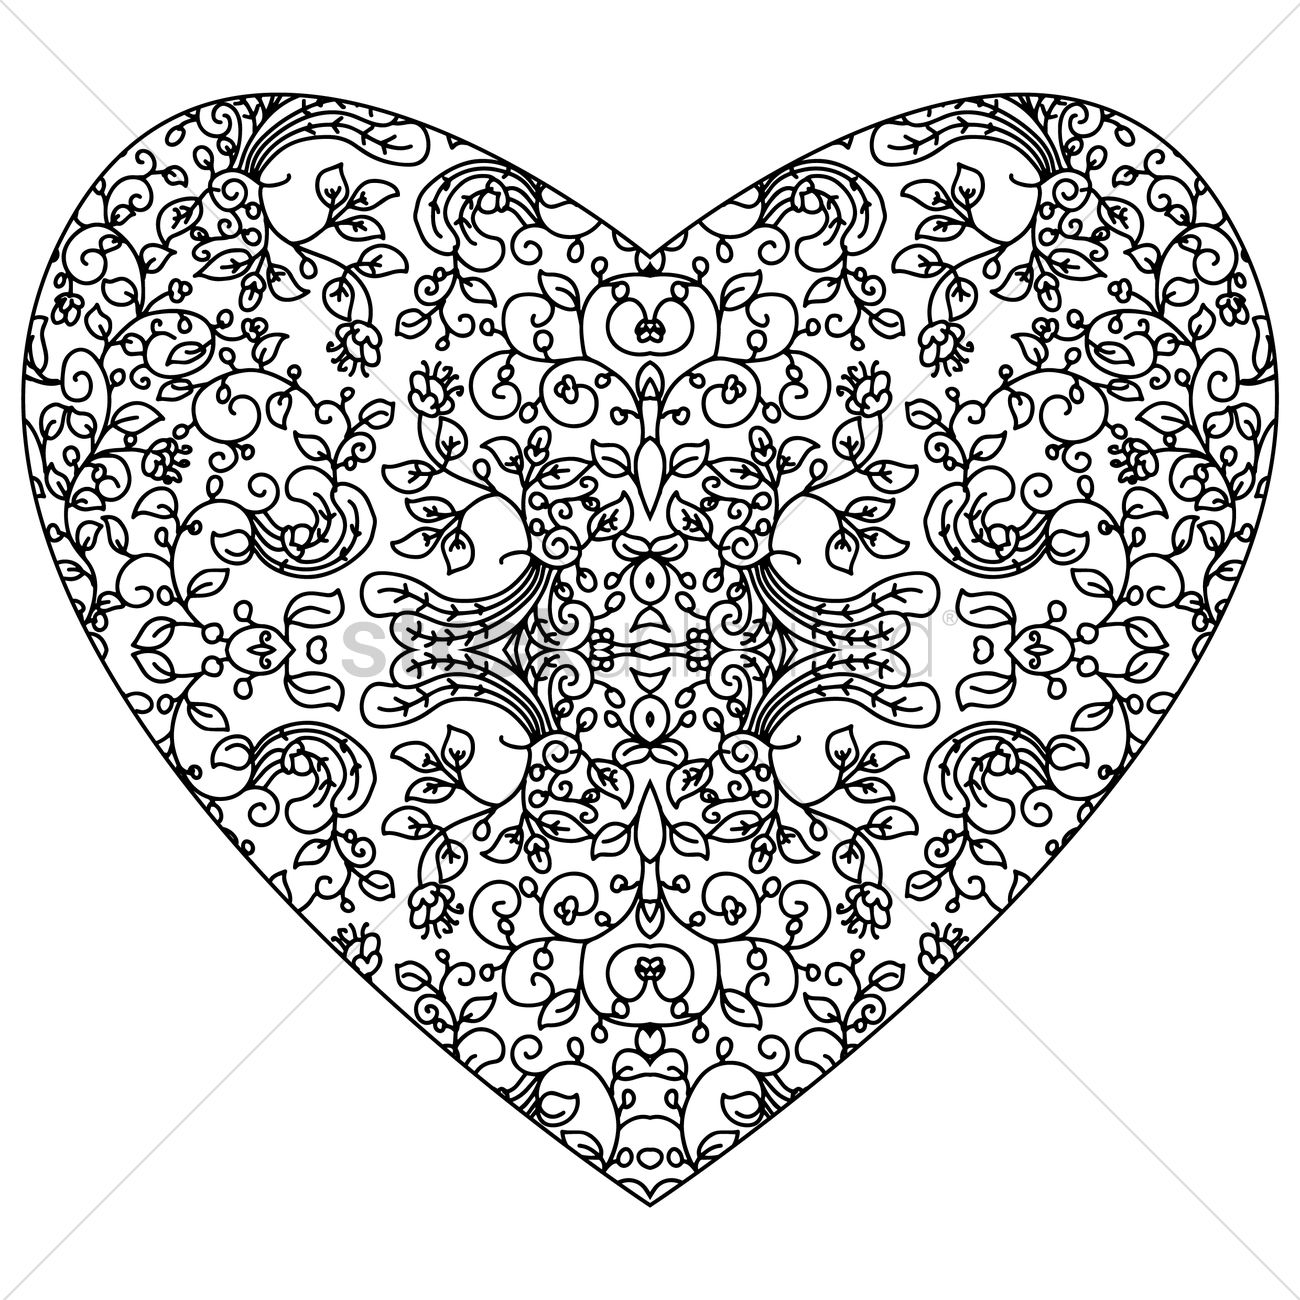 Abstract Intricate Heart Design Vector Image 1959757